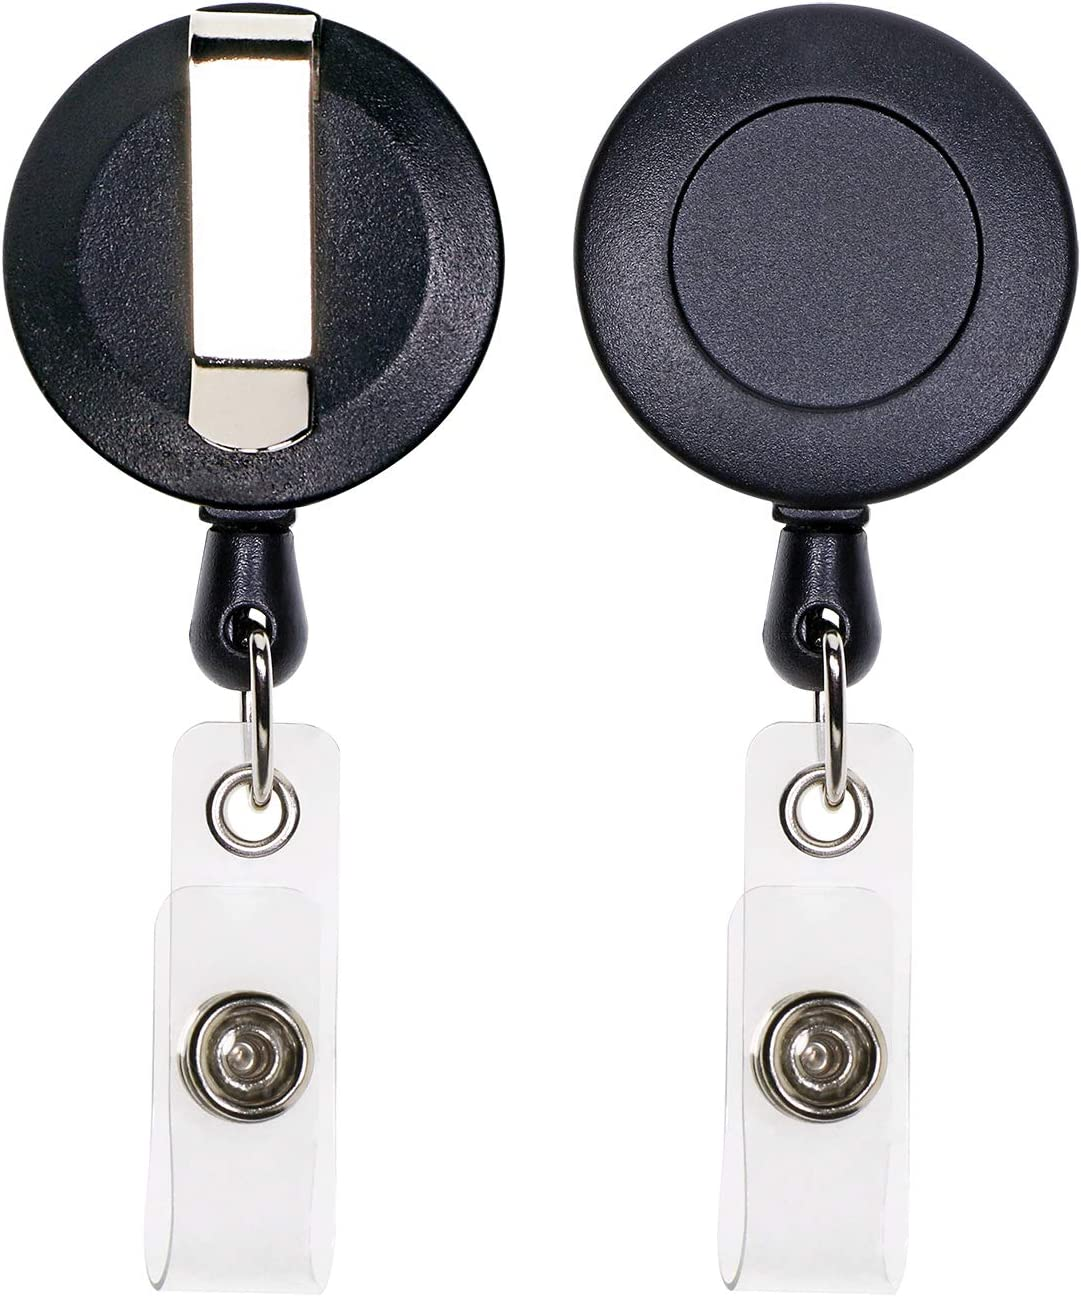 Tupalizy 5PCS Retractable ID Badge Holder for Nurse Student Badge Reel Clips for Keys Pockets Customizing Art Craft Gifts Work Coworkers Business Hospital Nursing School Office Use Black